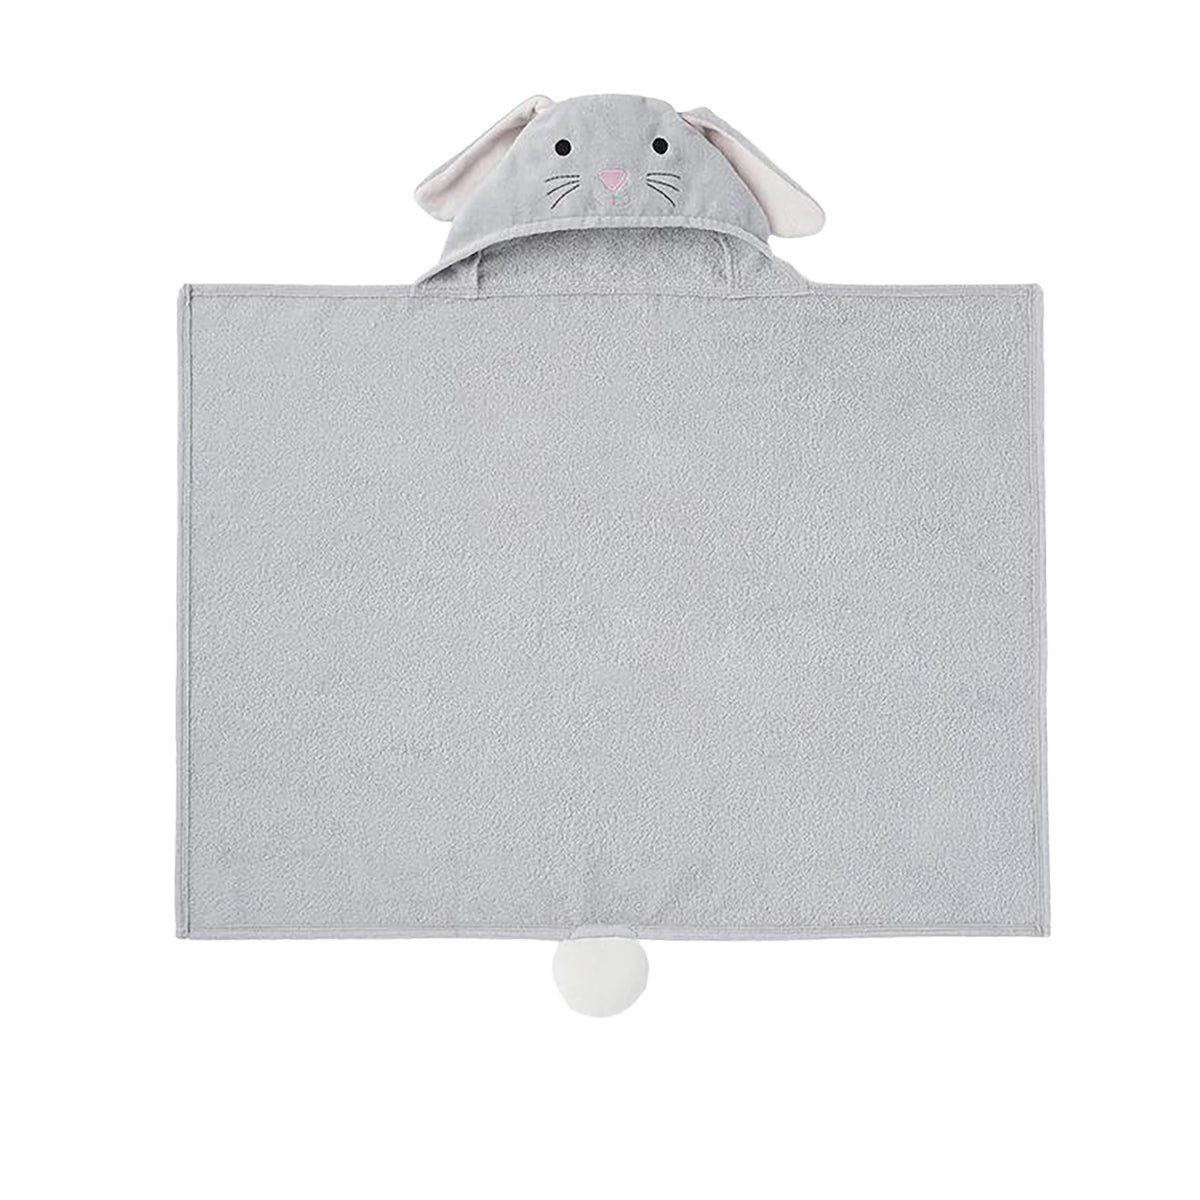 Bunny Hooded Bath Wrap